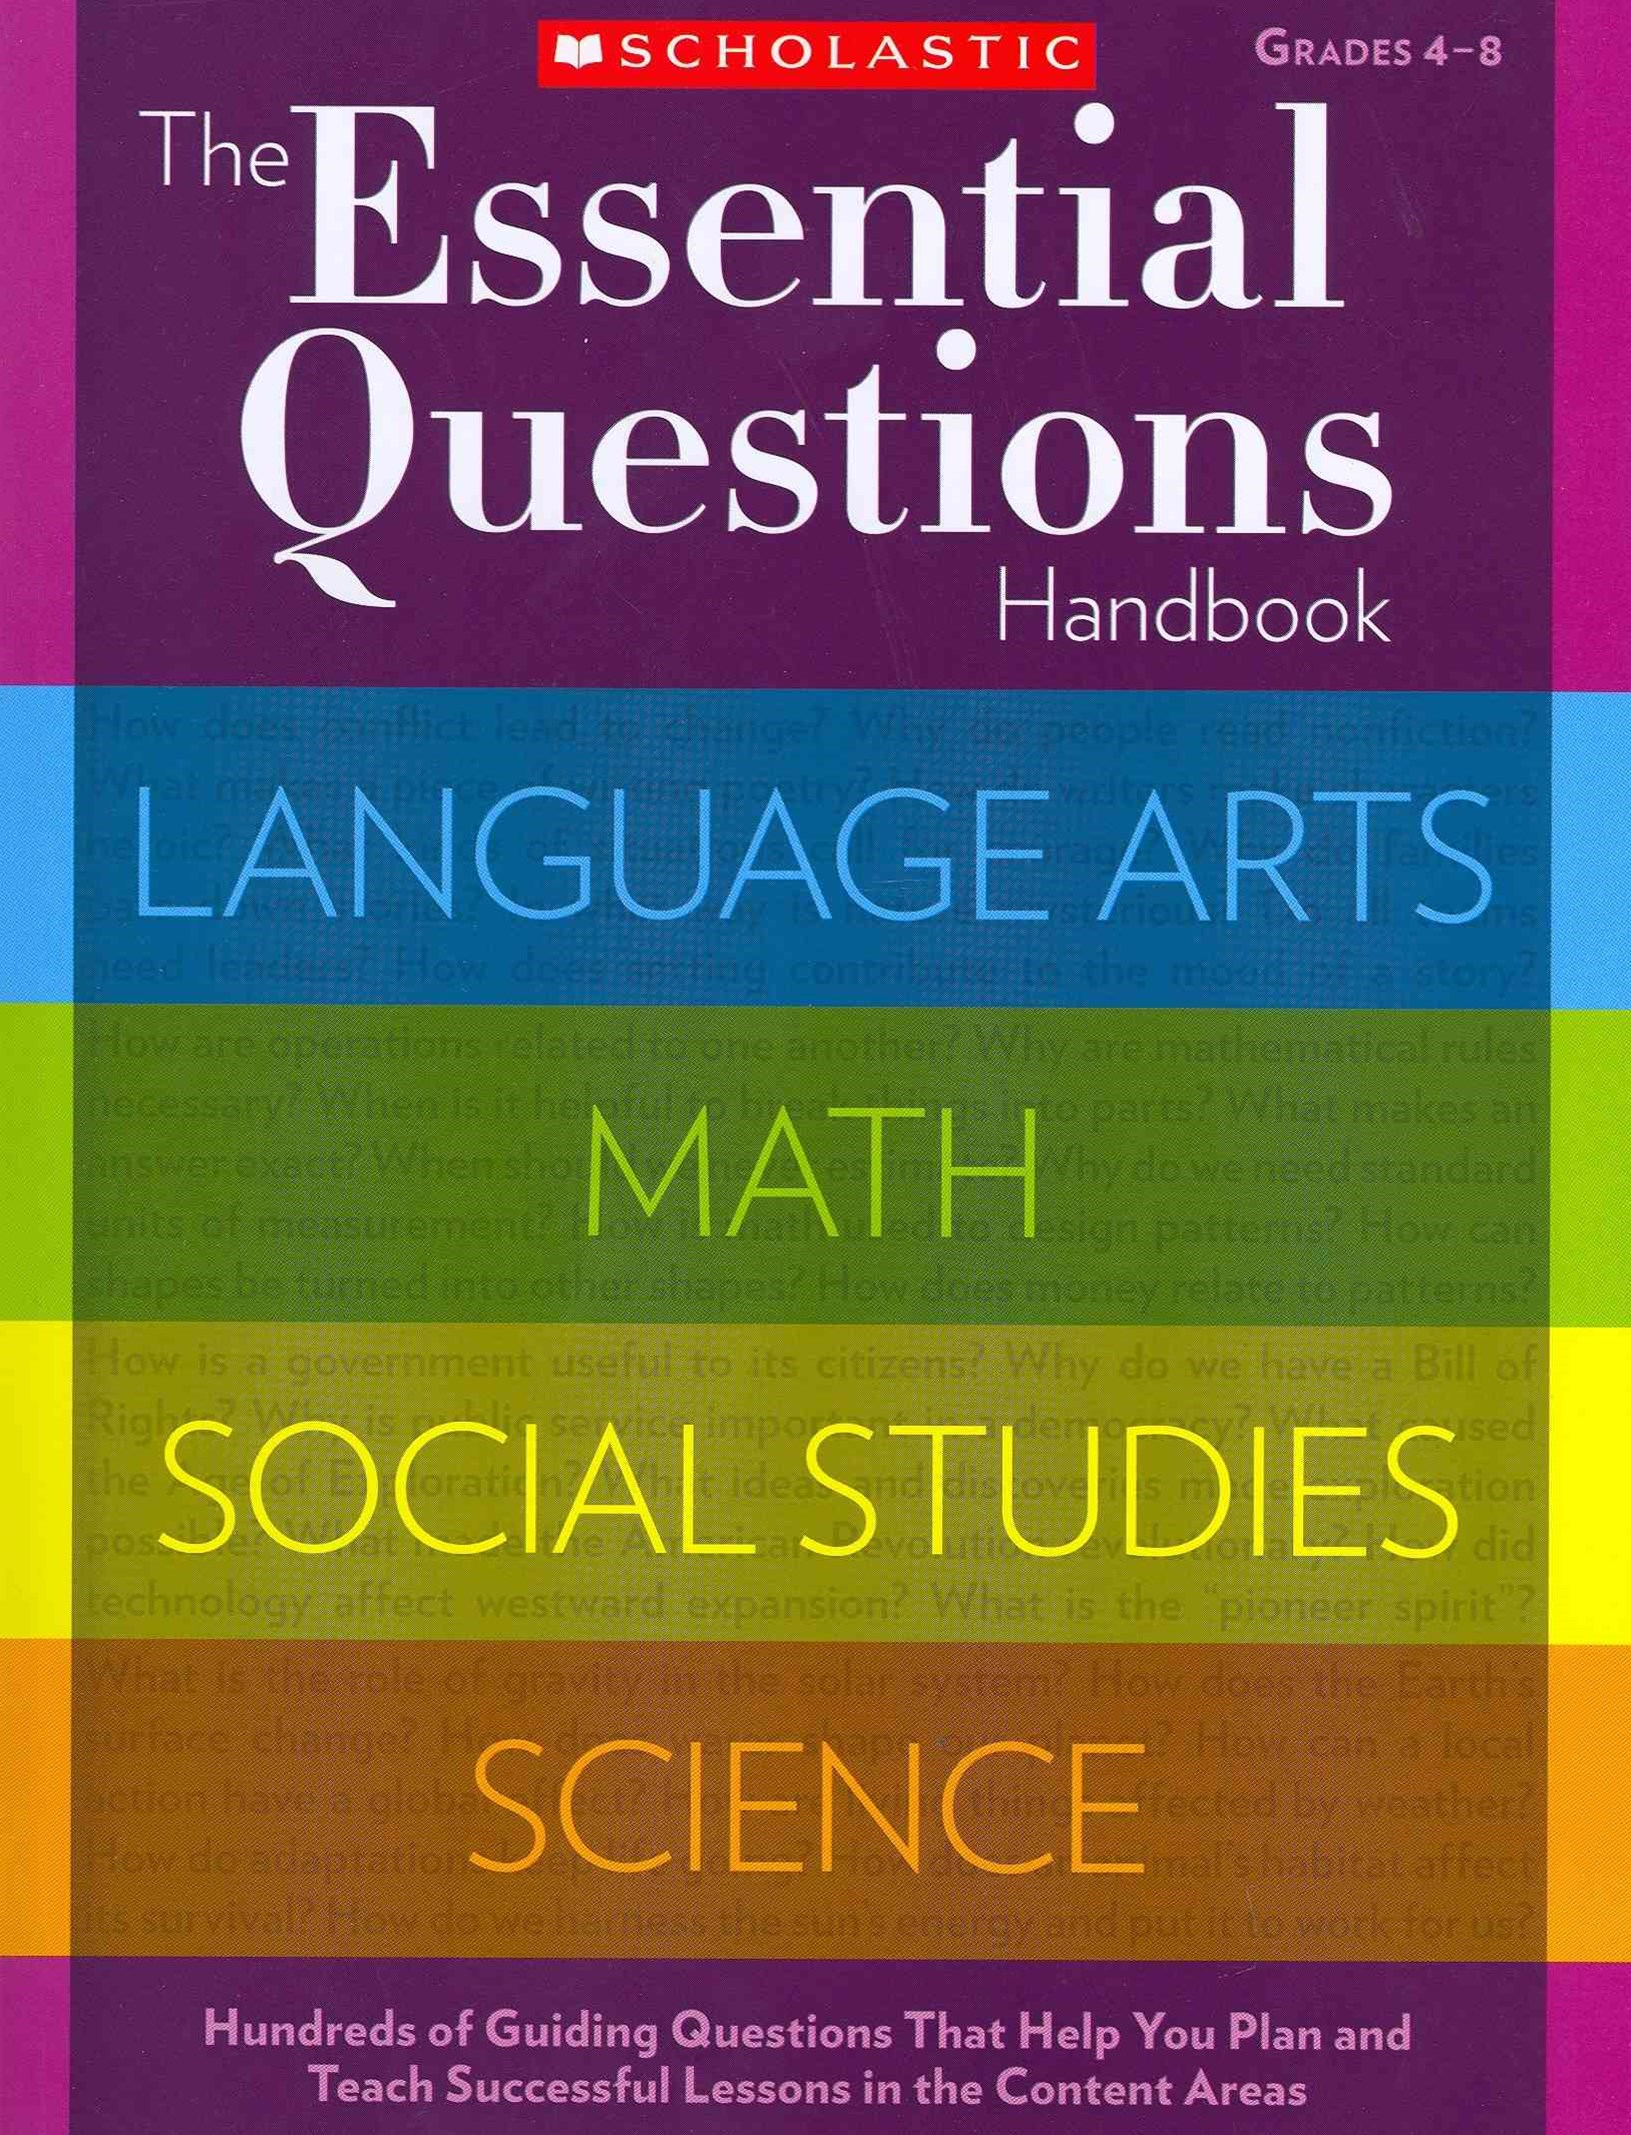 The Essential Questions Handbook, Grades 4-8